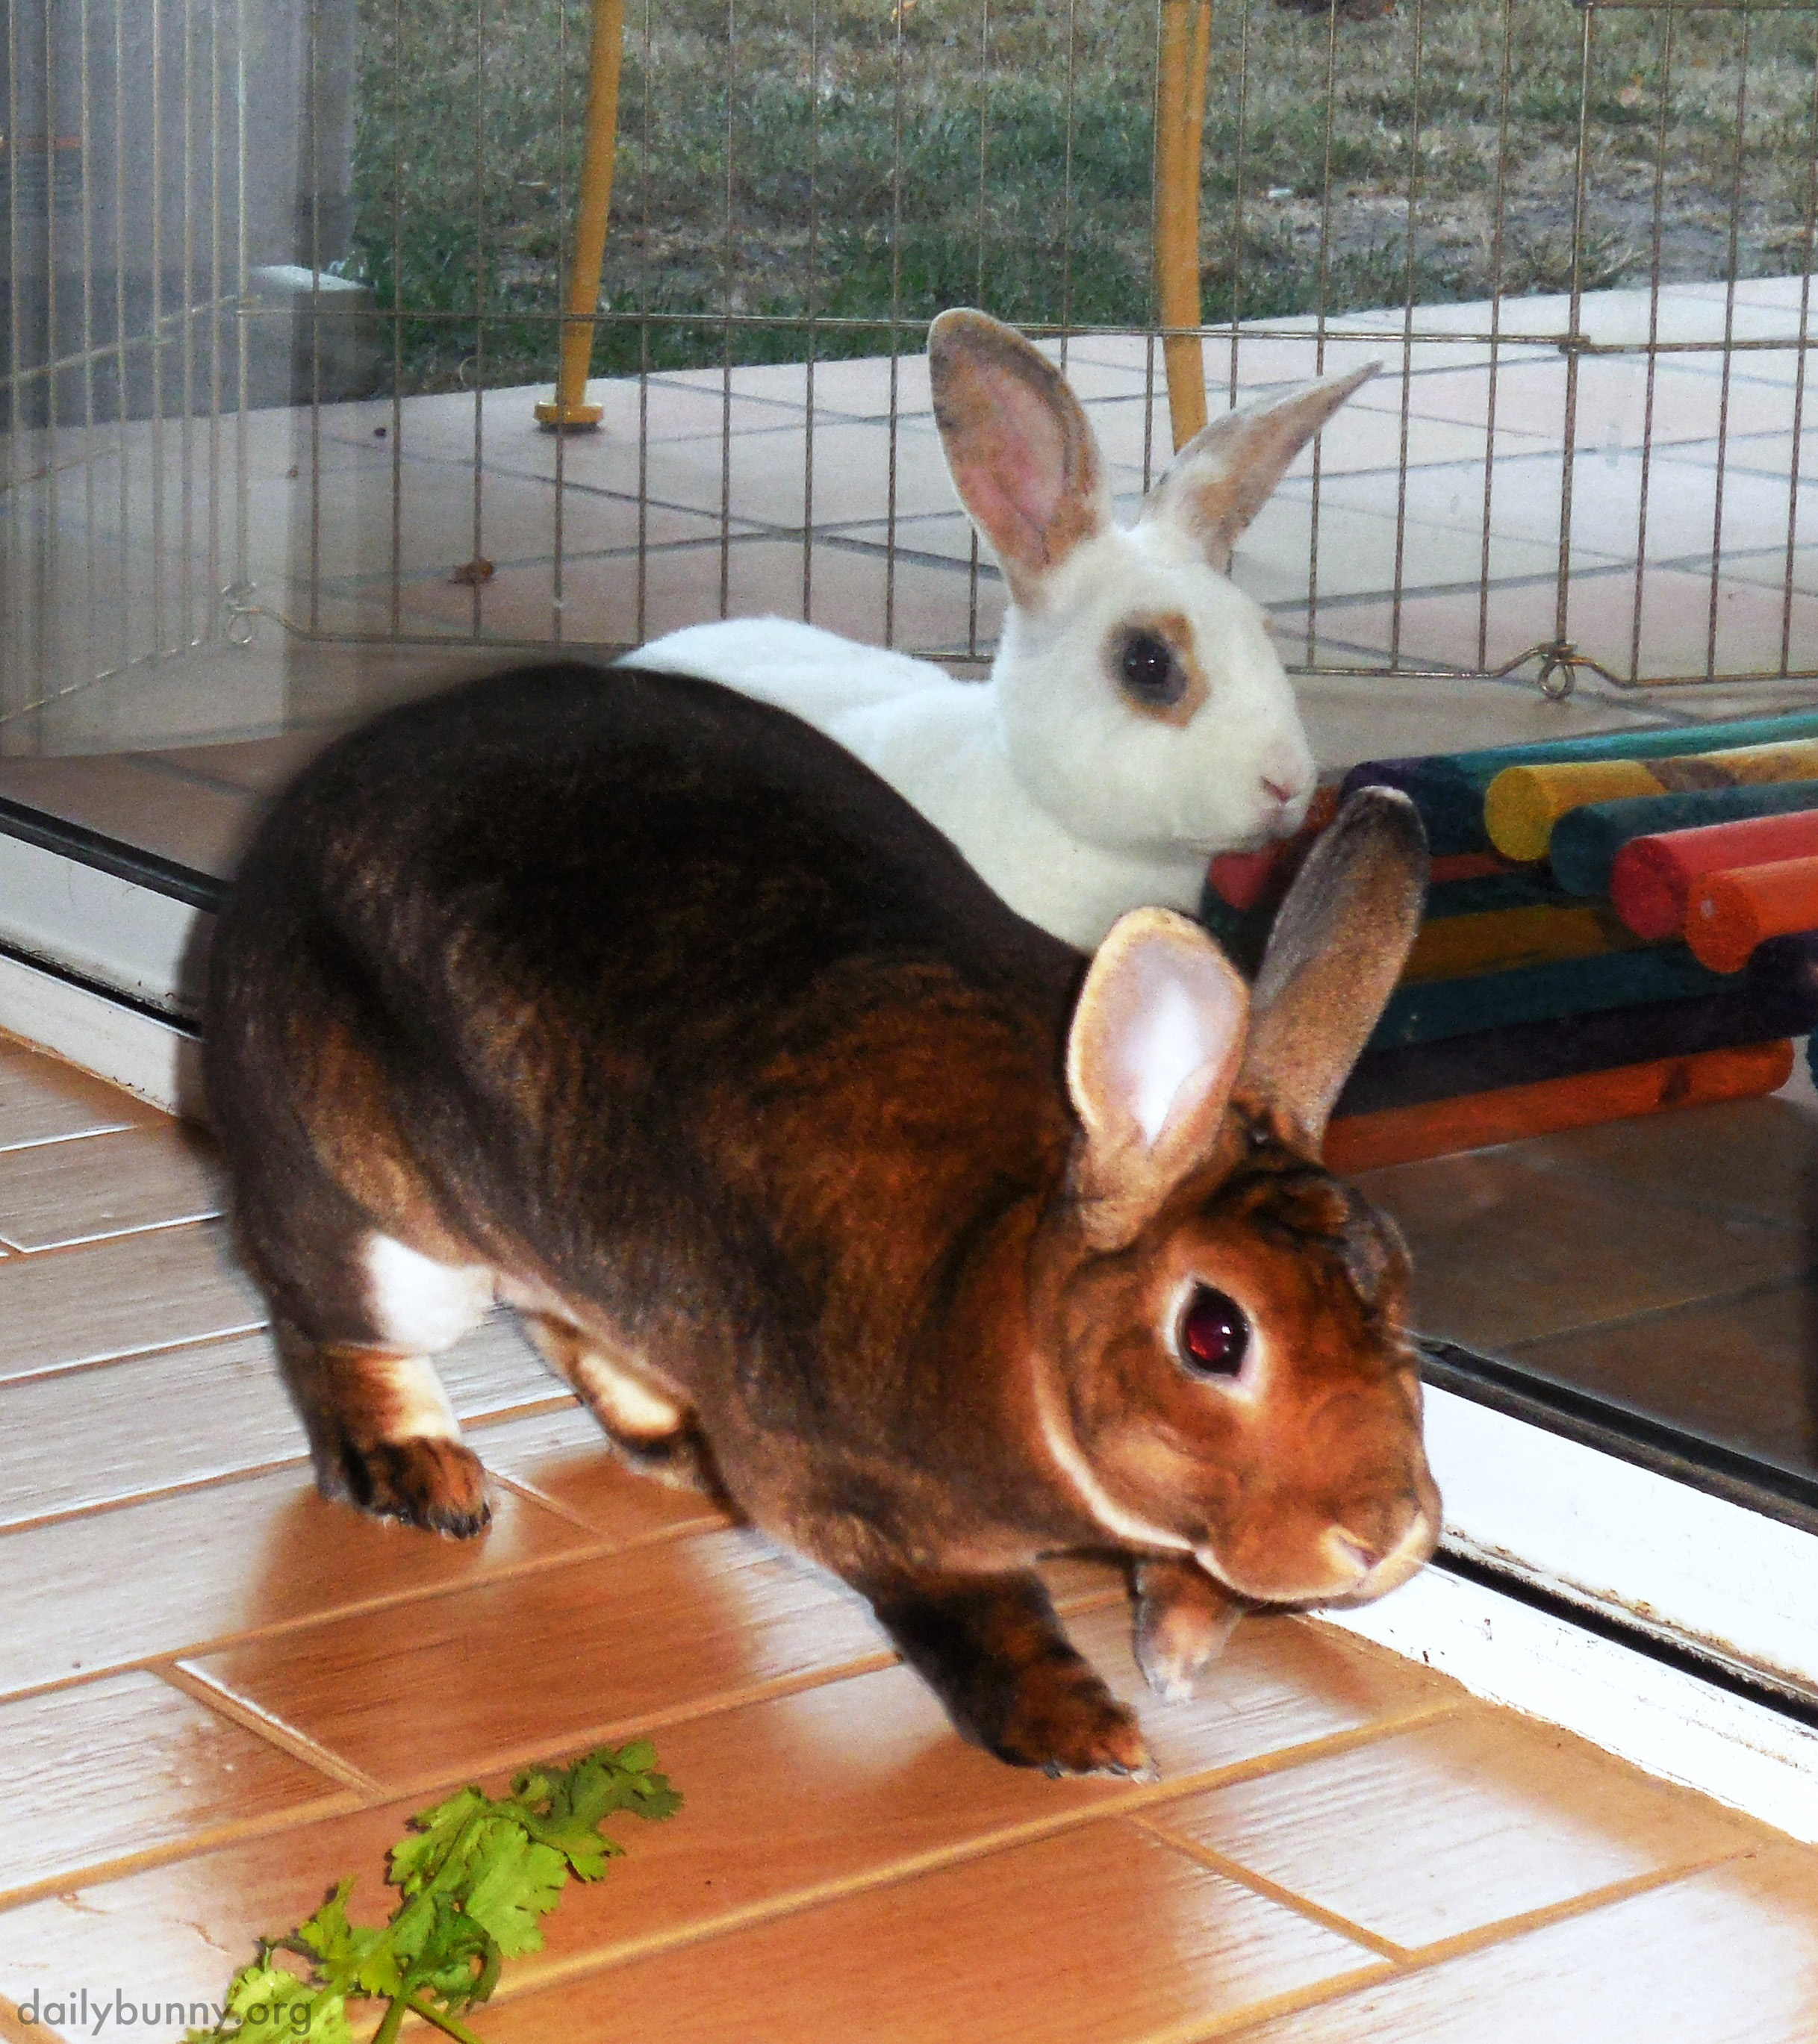 Bunny Burglars Quietly Creep into the Kitchen for a Vegetable Robbery